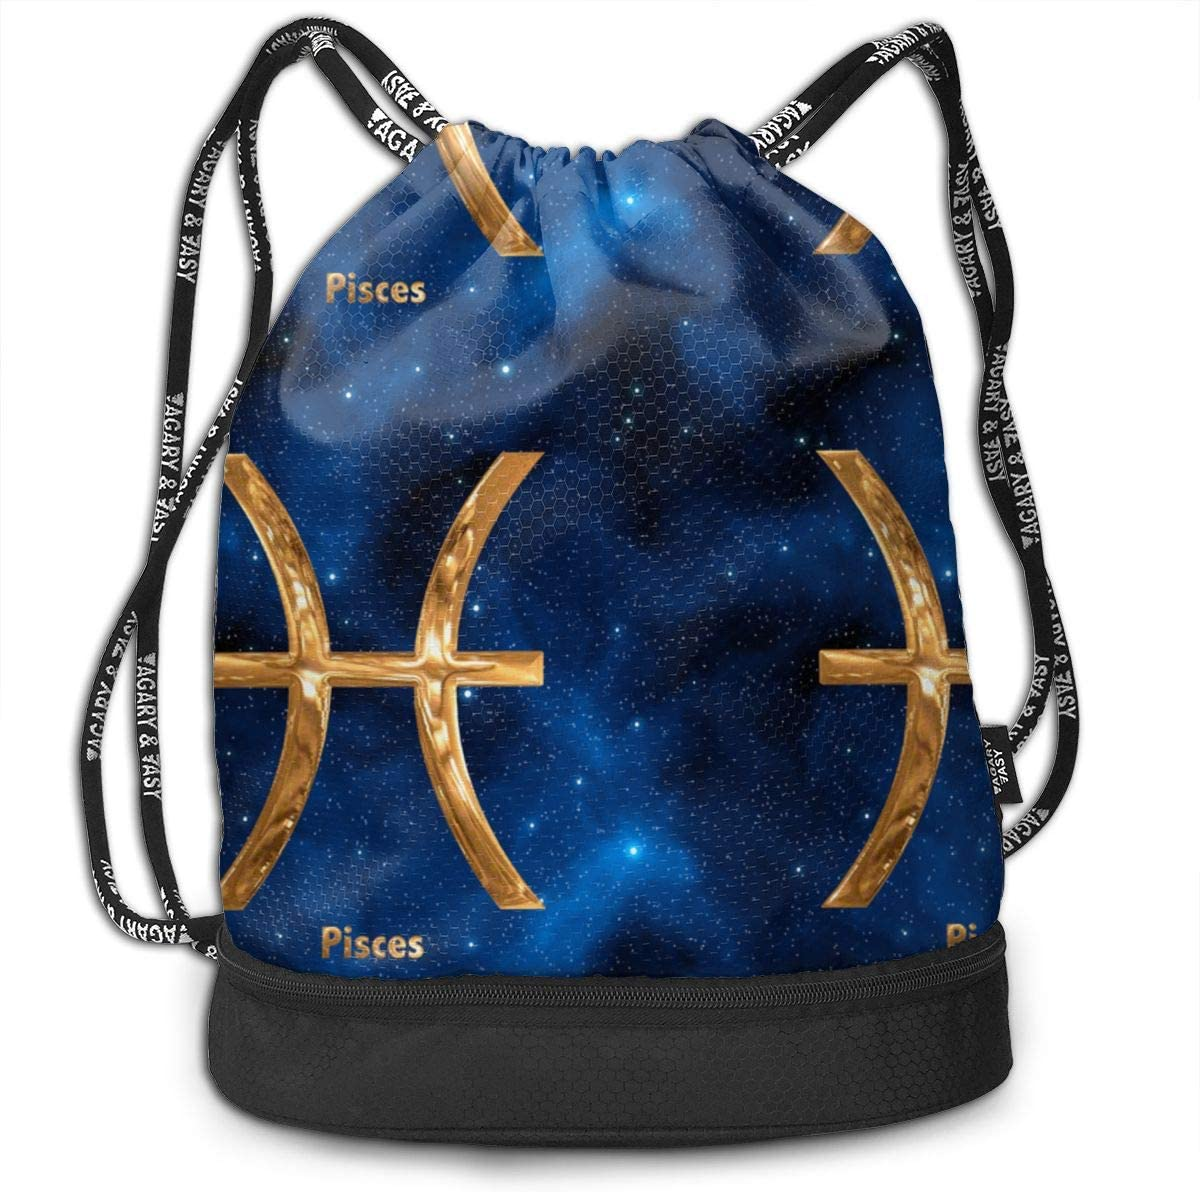 Pisces Zodiac Sign Drawstring Backpack Sports Athletic Gym Cinch Sack String Storage Bags for Hiking Travel Beach